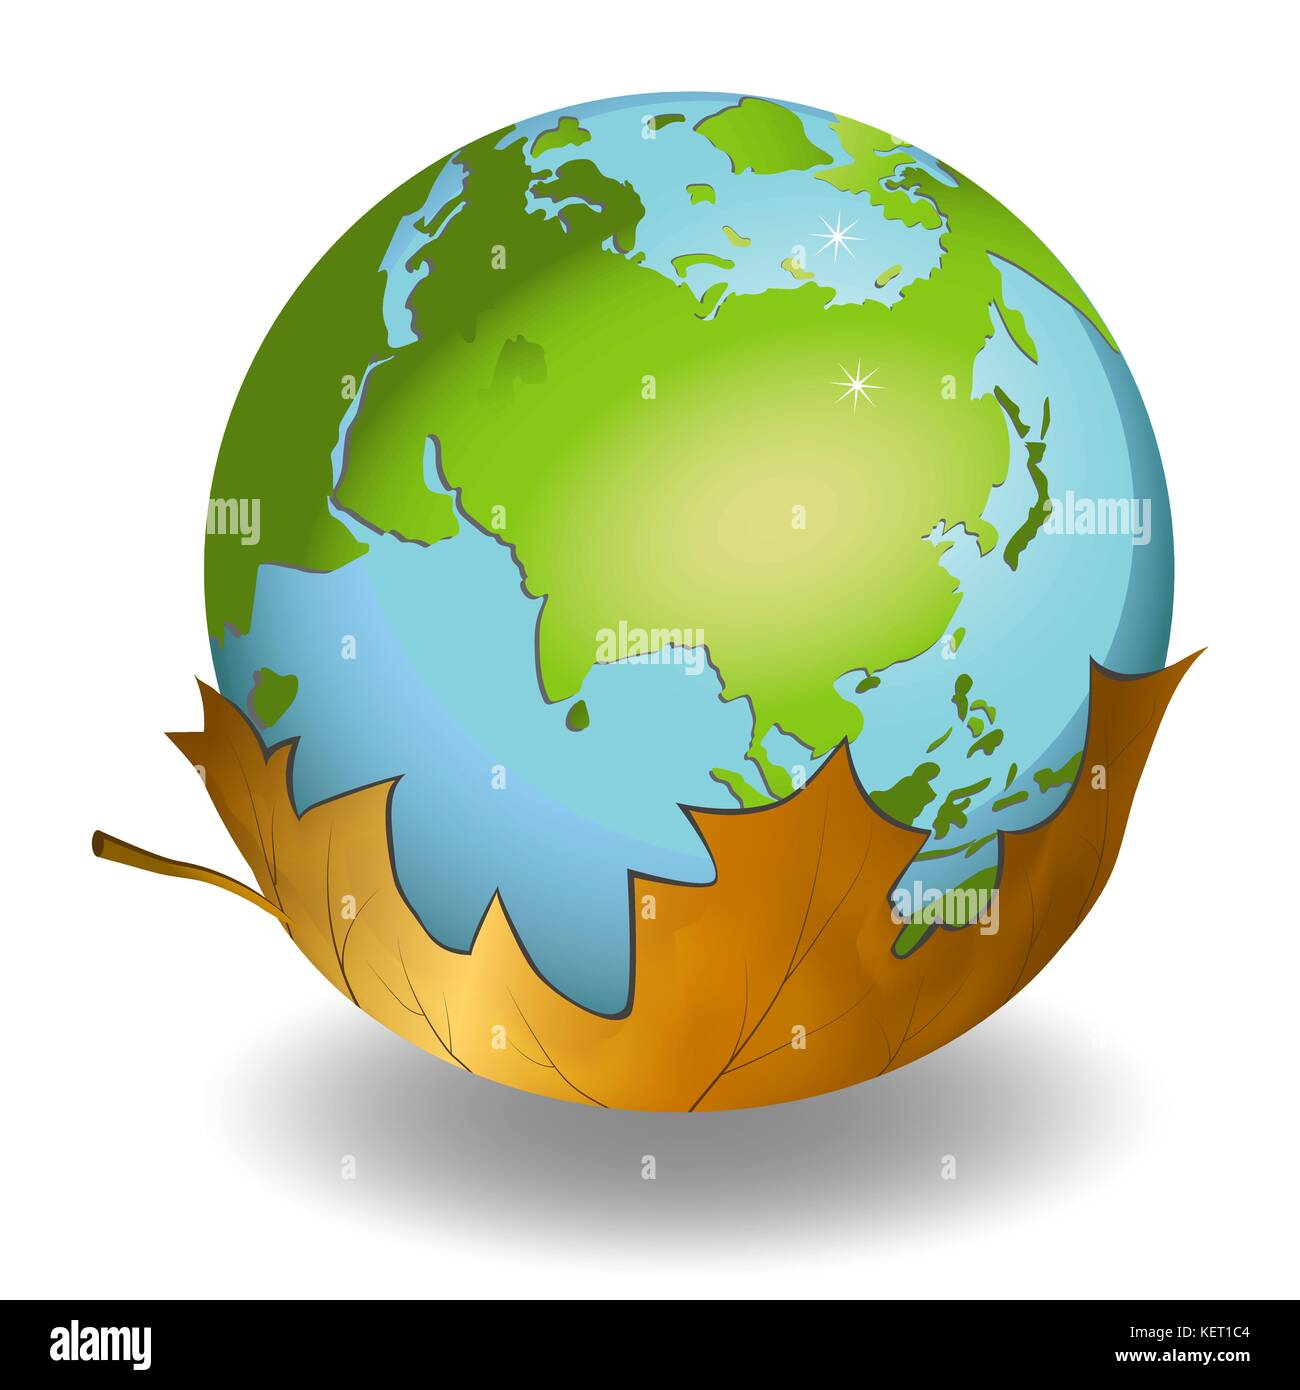 Earth globes on leaf on white background - Stock Image